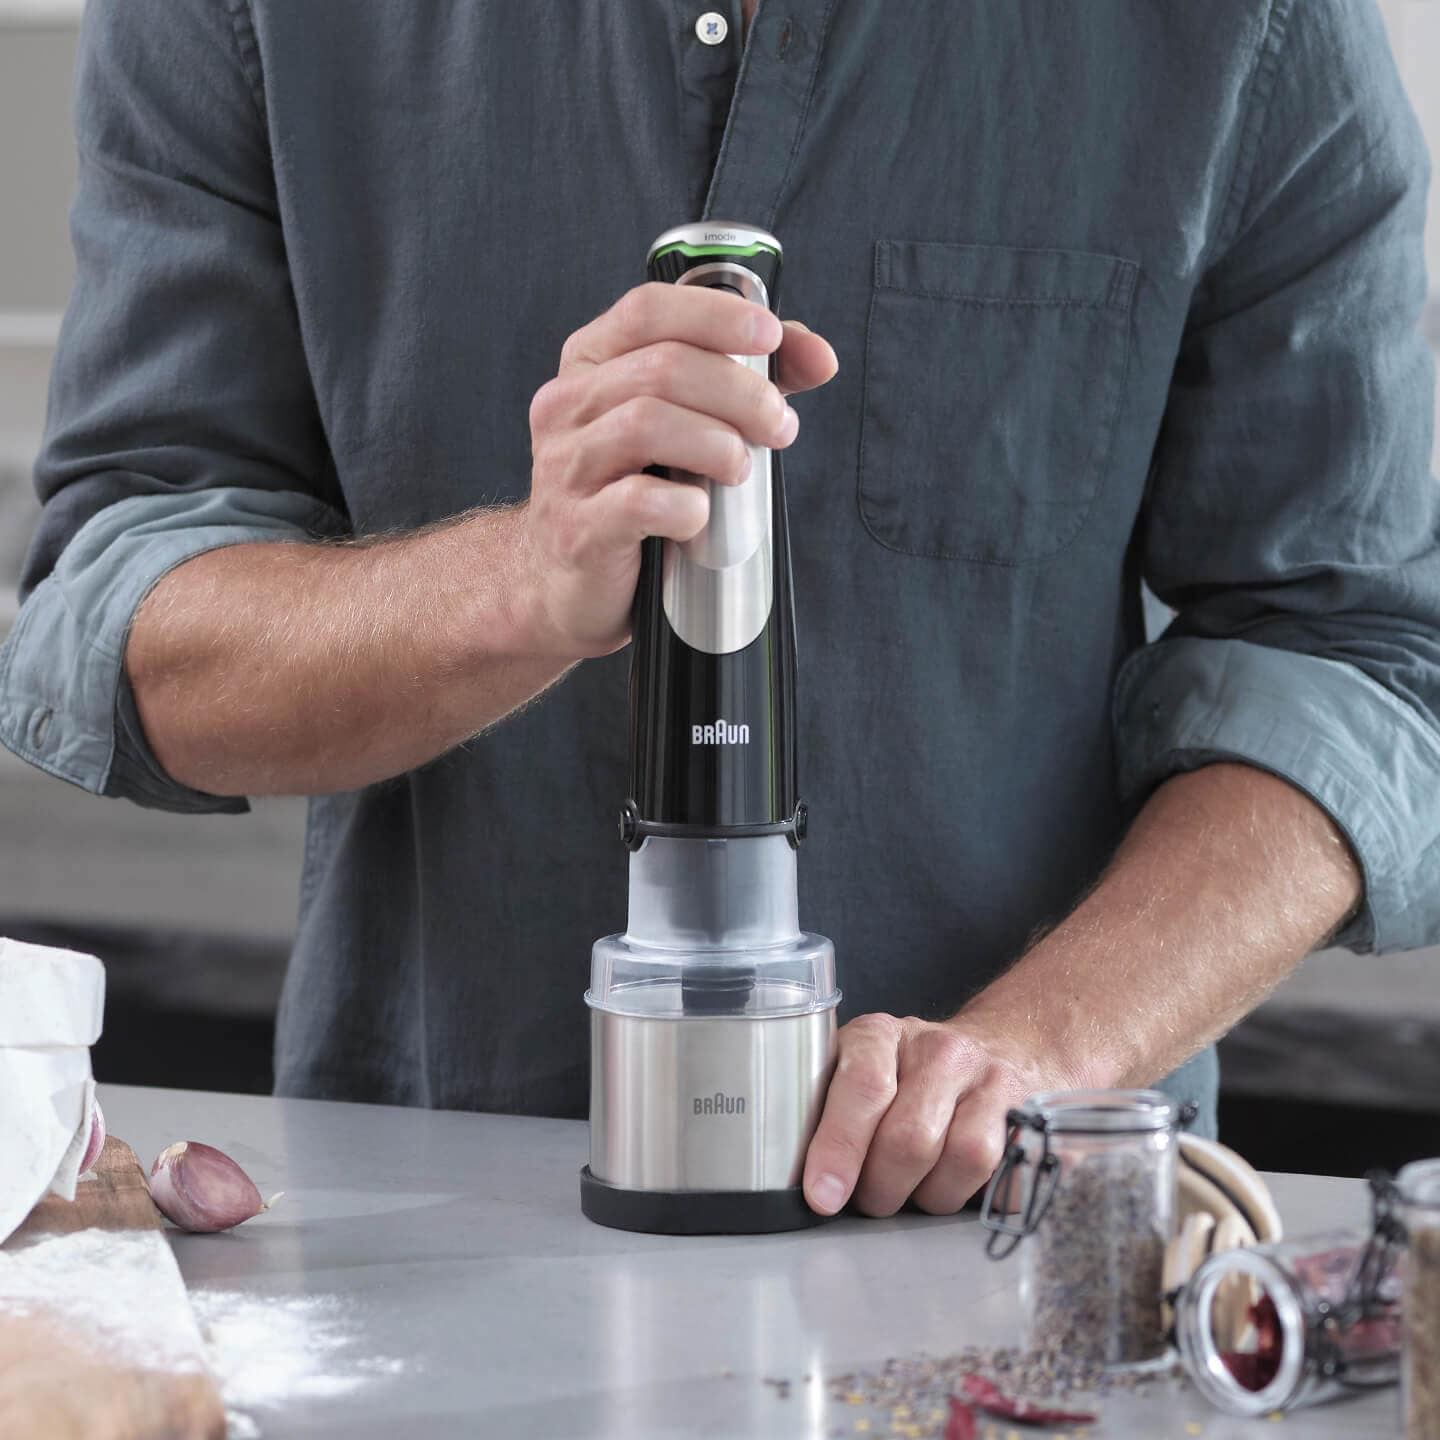 Braun MultiQuick 9X Hand blender with grinder attachment